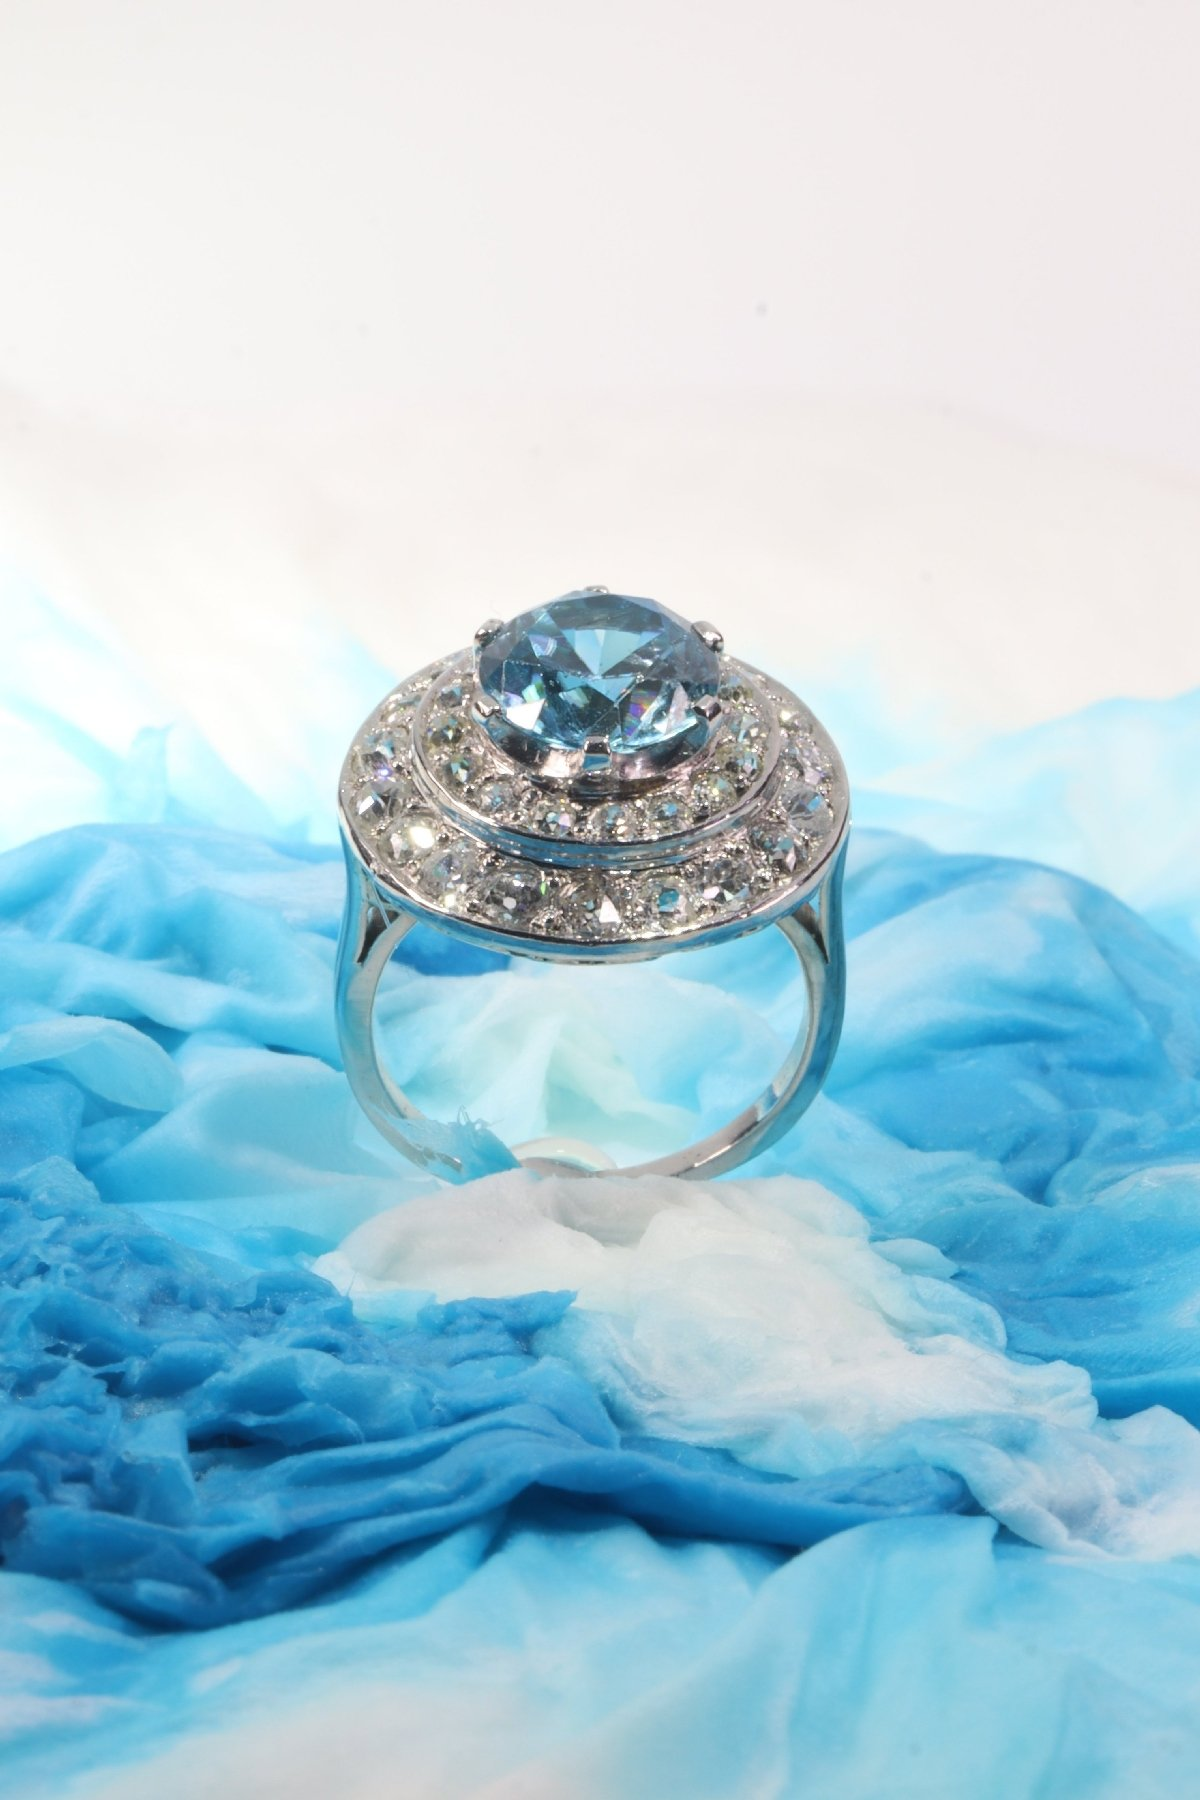 Click the picture to get to see this Vintage Fifties ring diamond loaded with a big starlite.